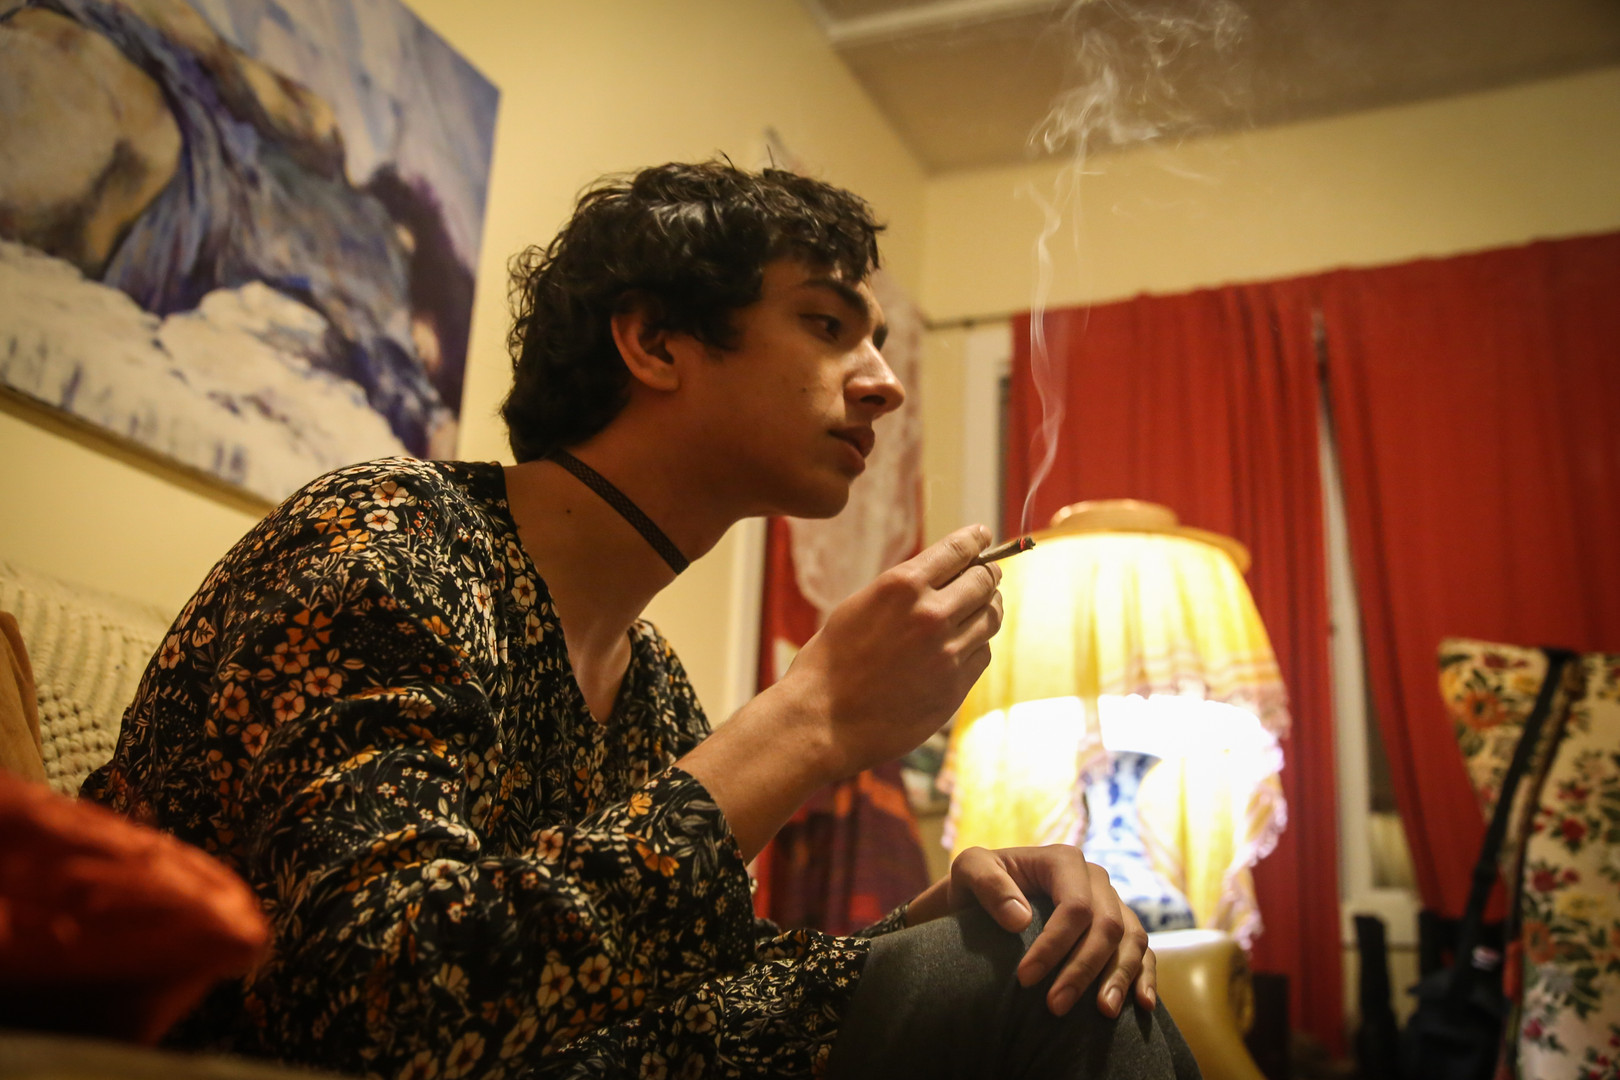 Strege unwinds after his day by smoking a joint in his home in San Francisco, Calif. on Apr. 3. (Photo: Adelyna Tirado)